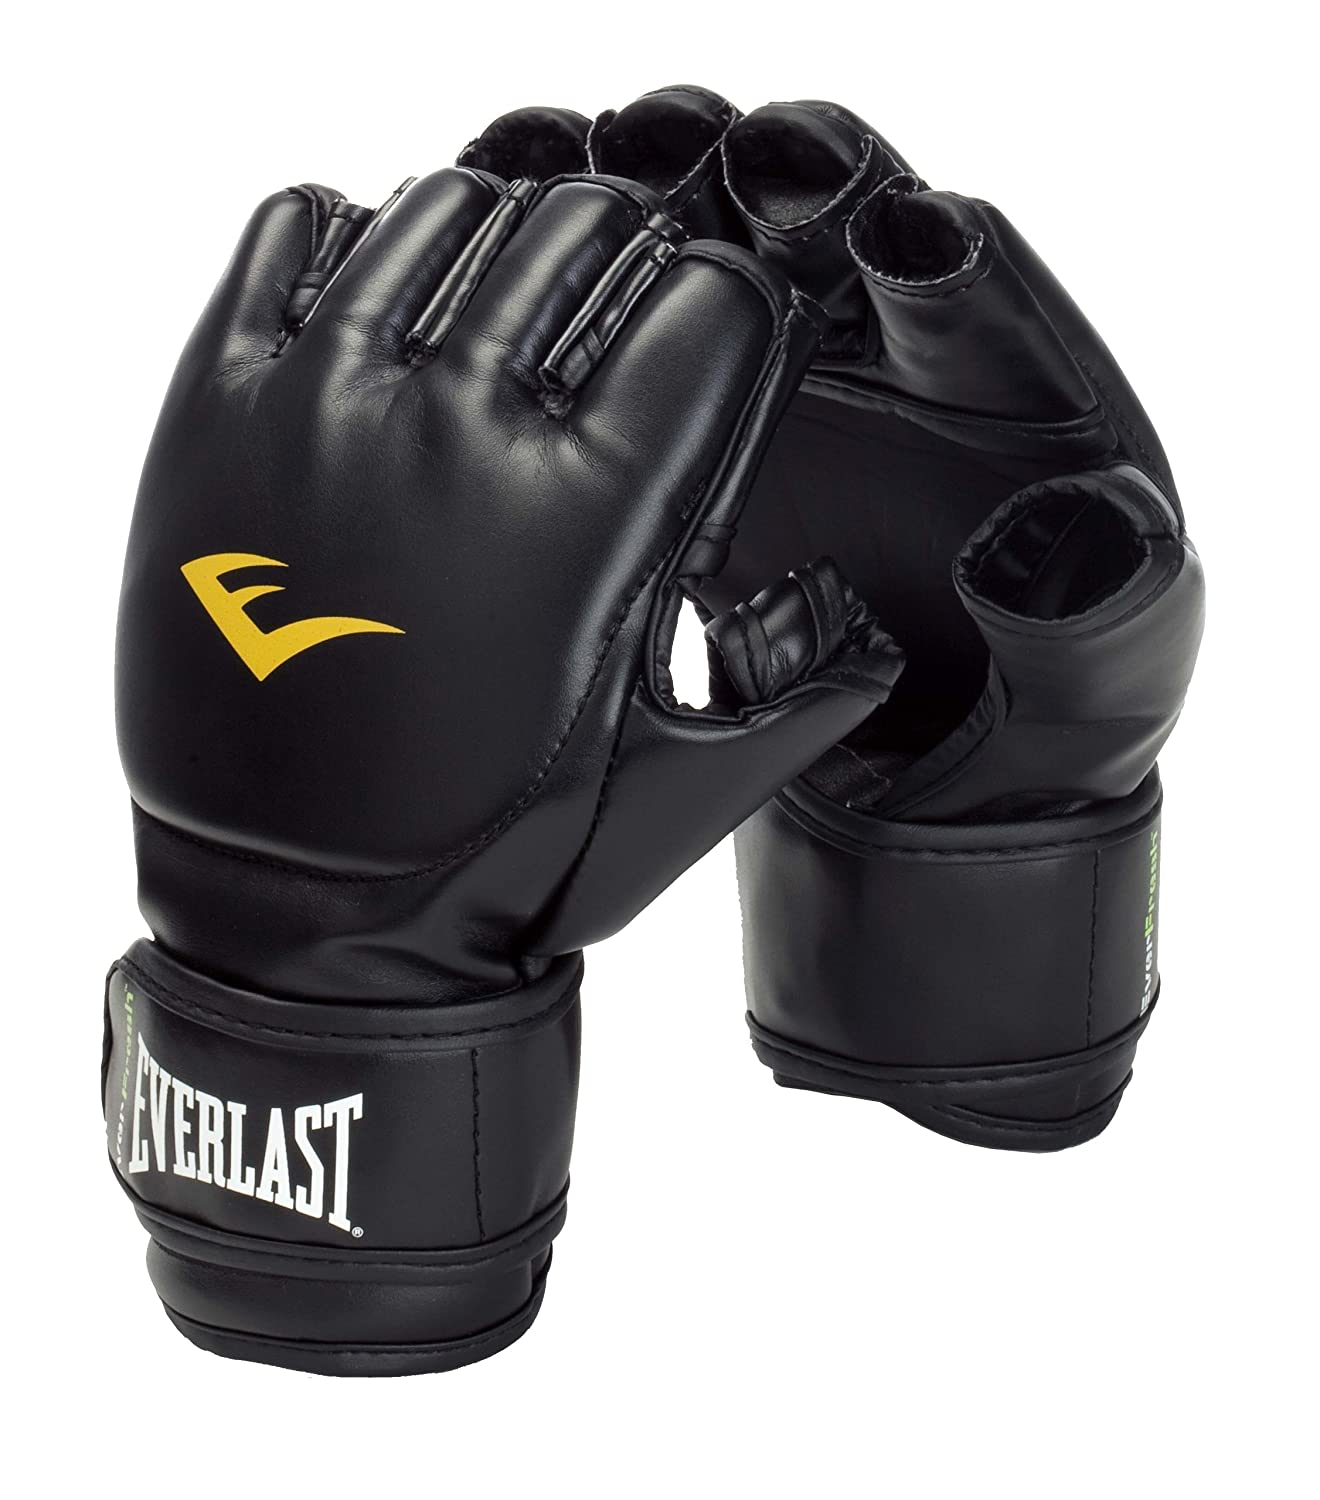 Everlast Grappling Handschuh Pu bei amazon kaufen